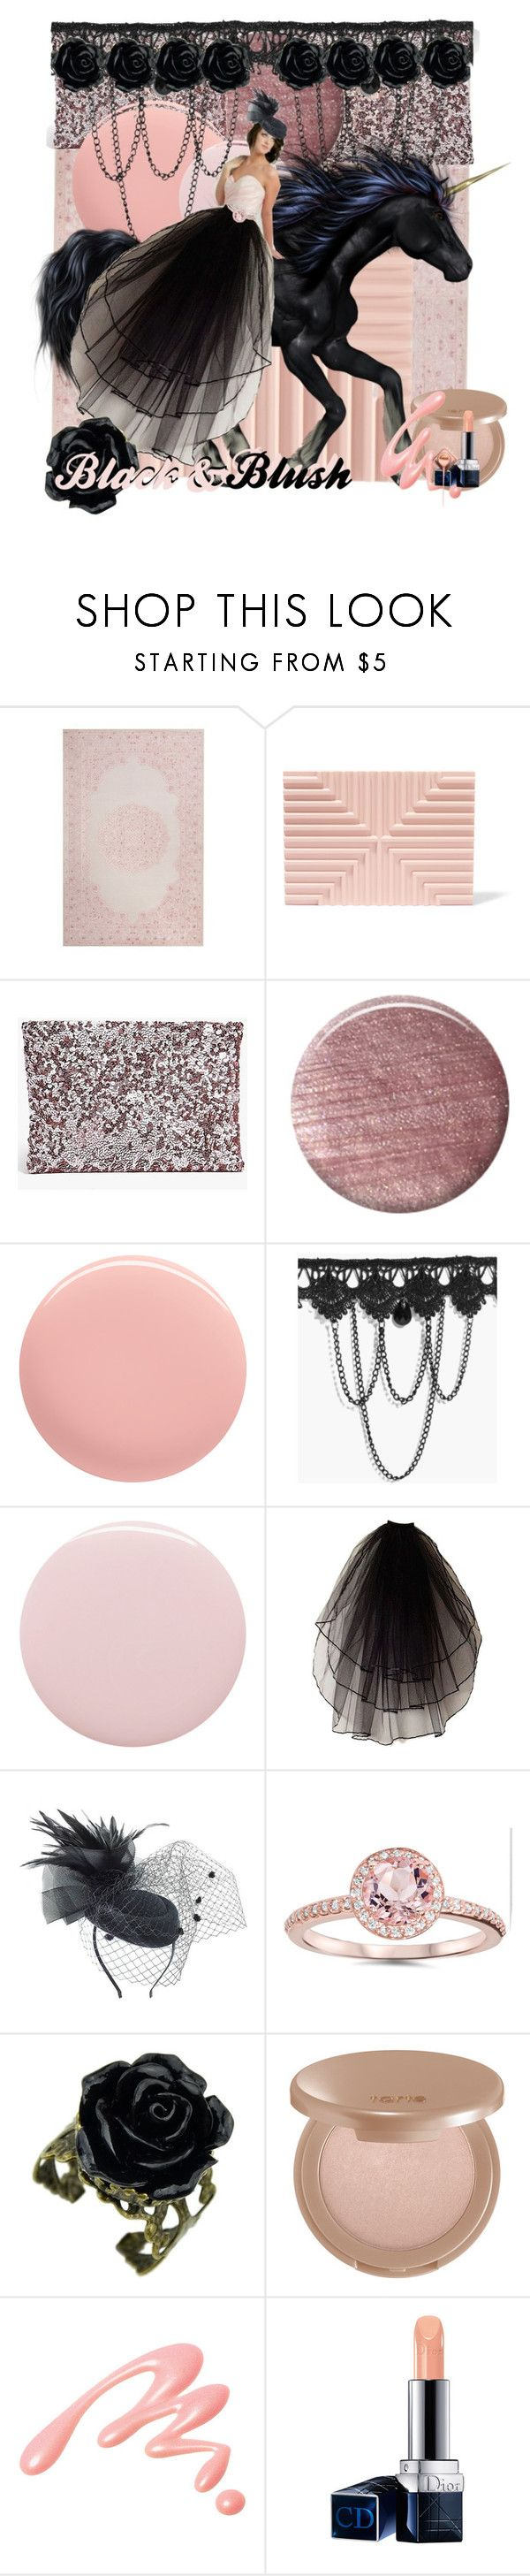 """""""Black & BluShhh"""" by jessalena ❤ liked on Polyvore featuring Lee Savage, Boohoo, Lauren B. Beauty, Nails Inc., tarte, Chantecaille and Christian Dior"""